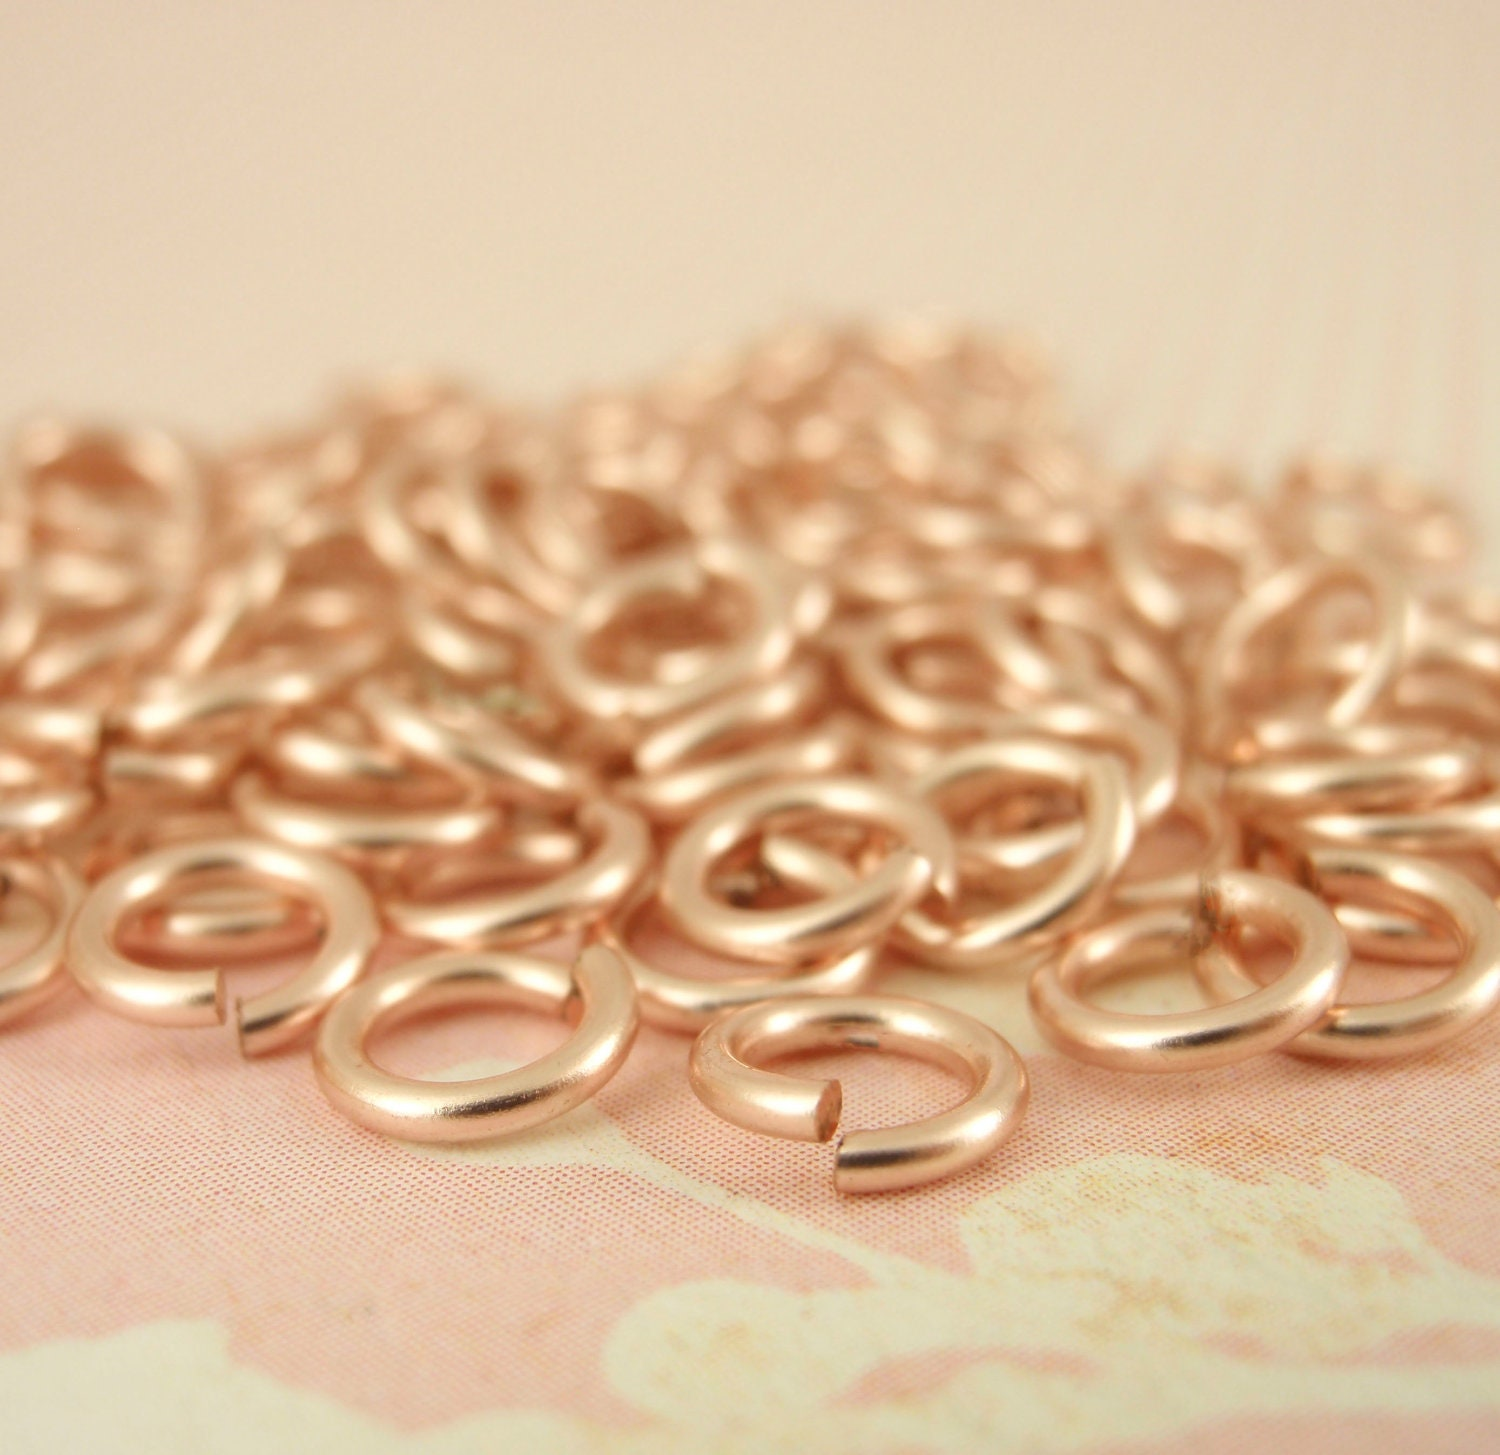 100 Jump Rings in Rose Gold Colored Enameled Copper in 24 22